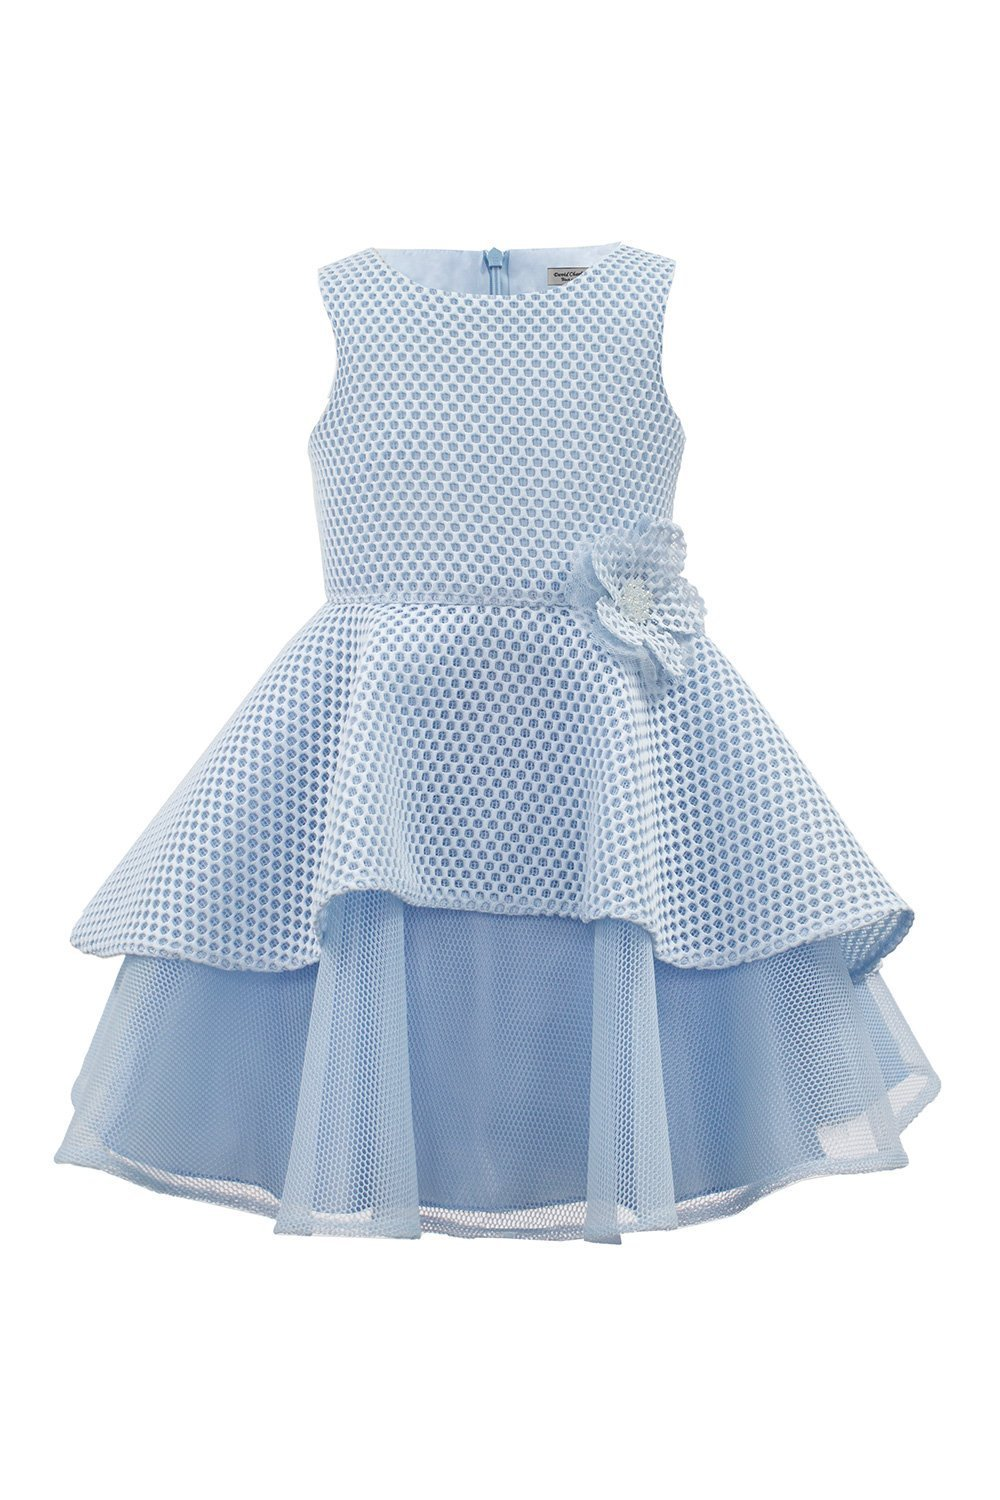 Pastel Blue Tea Dress - David Charles Childrens Wear